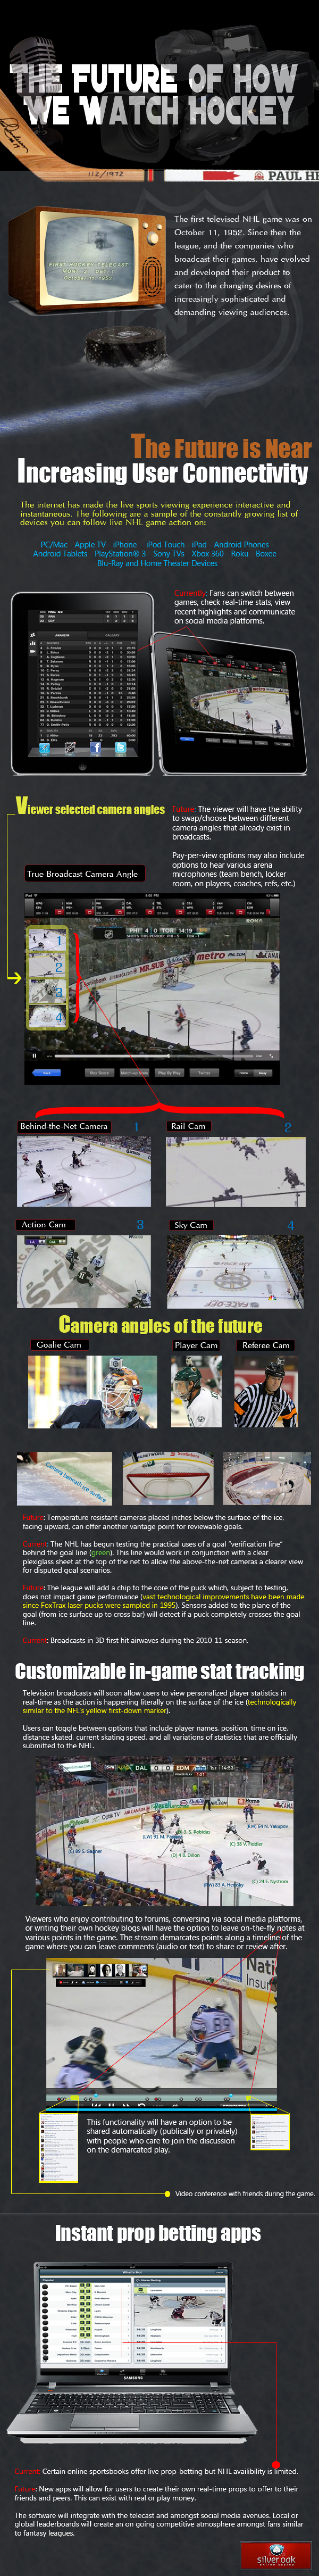 The Future of How We Watch Hockey Infographic